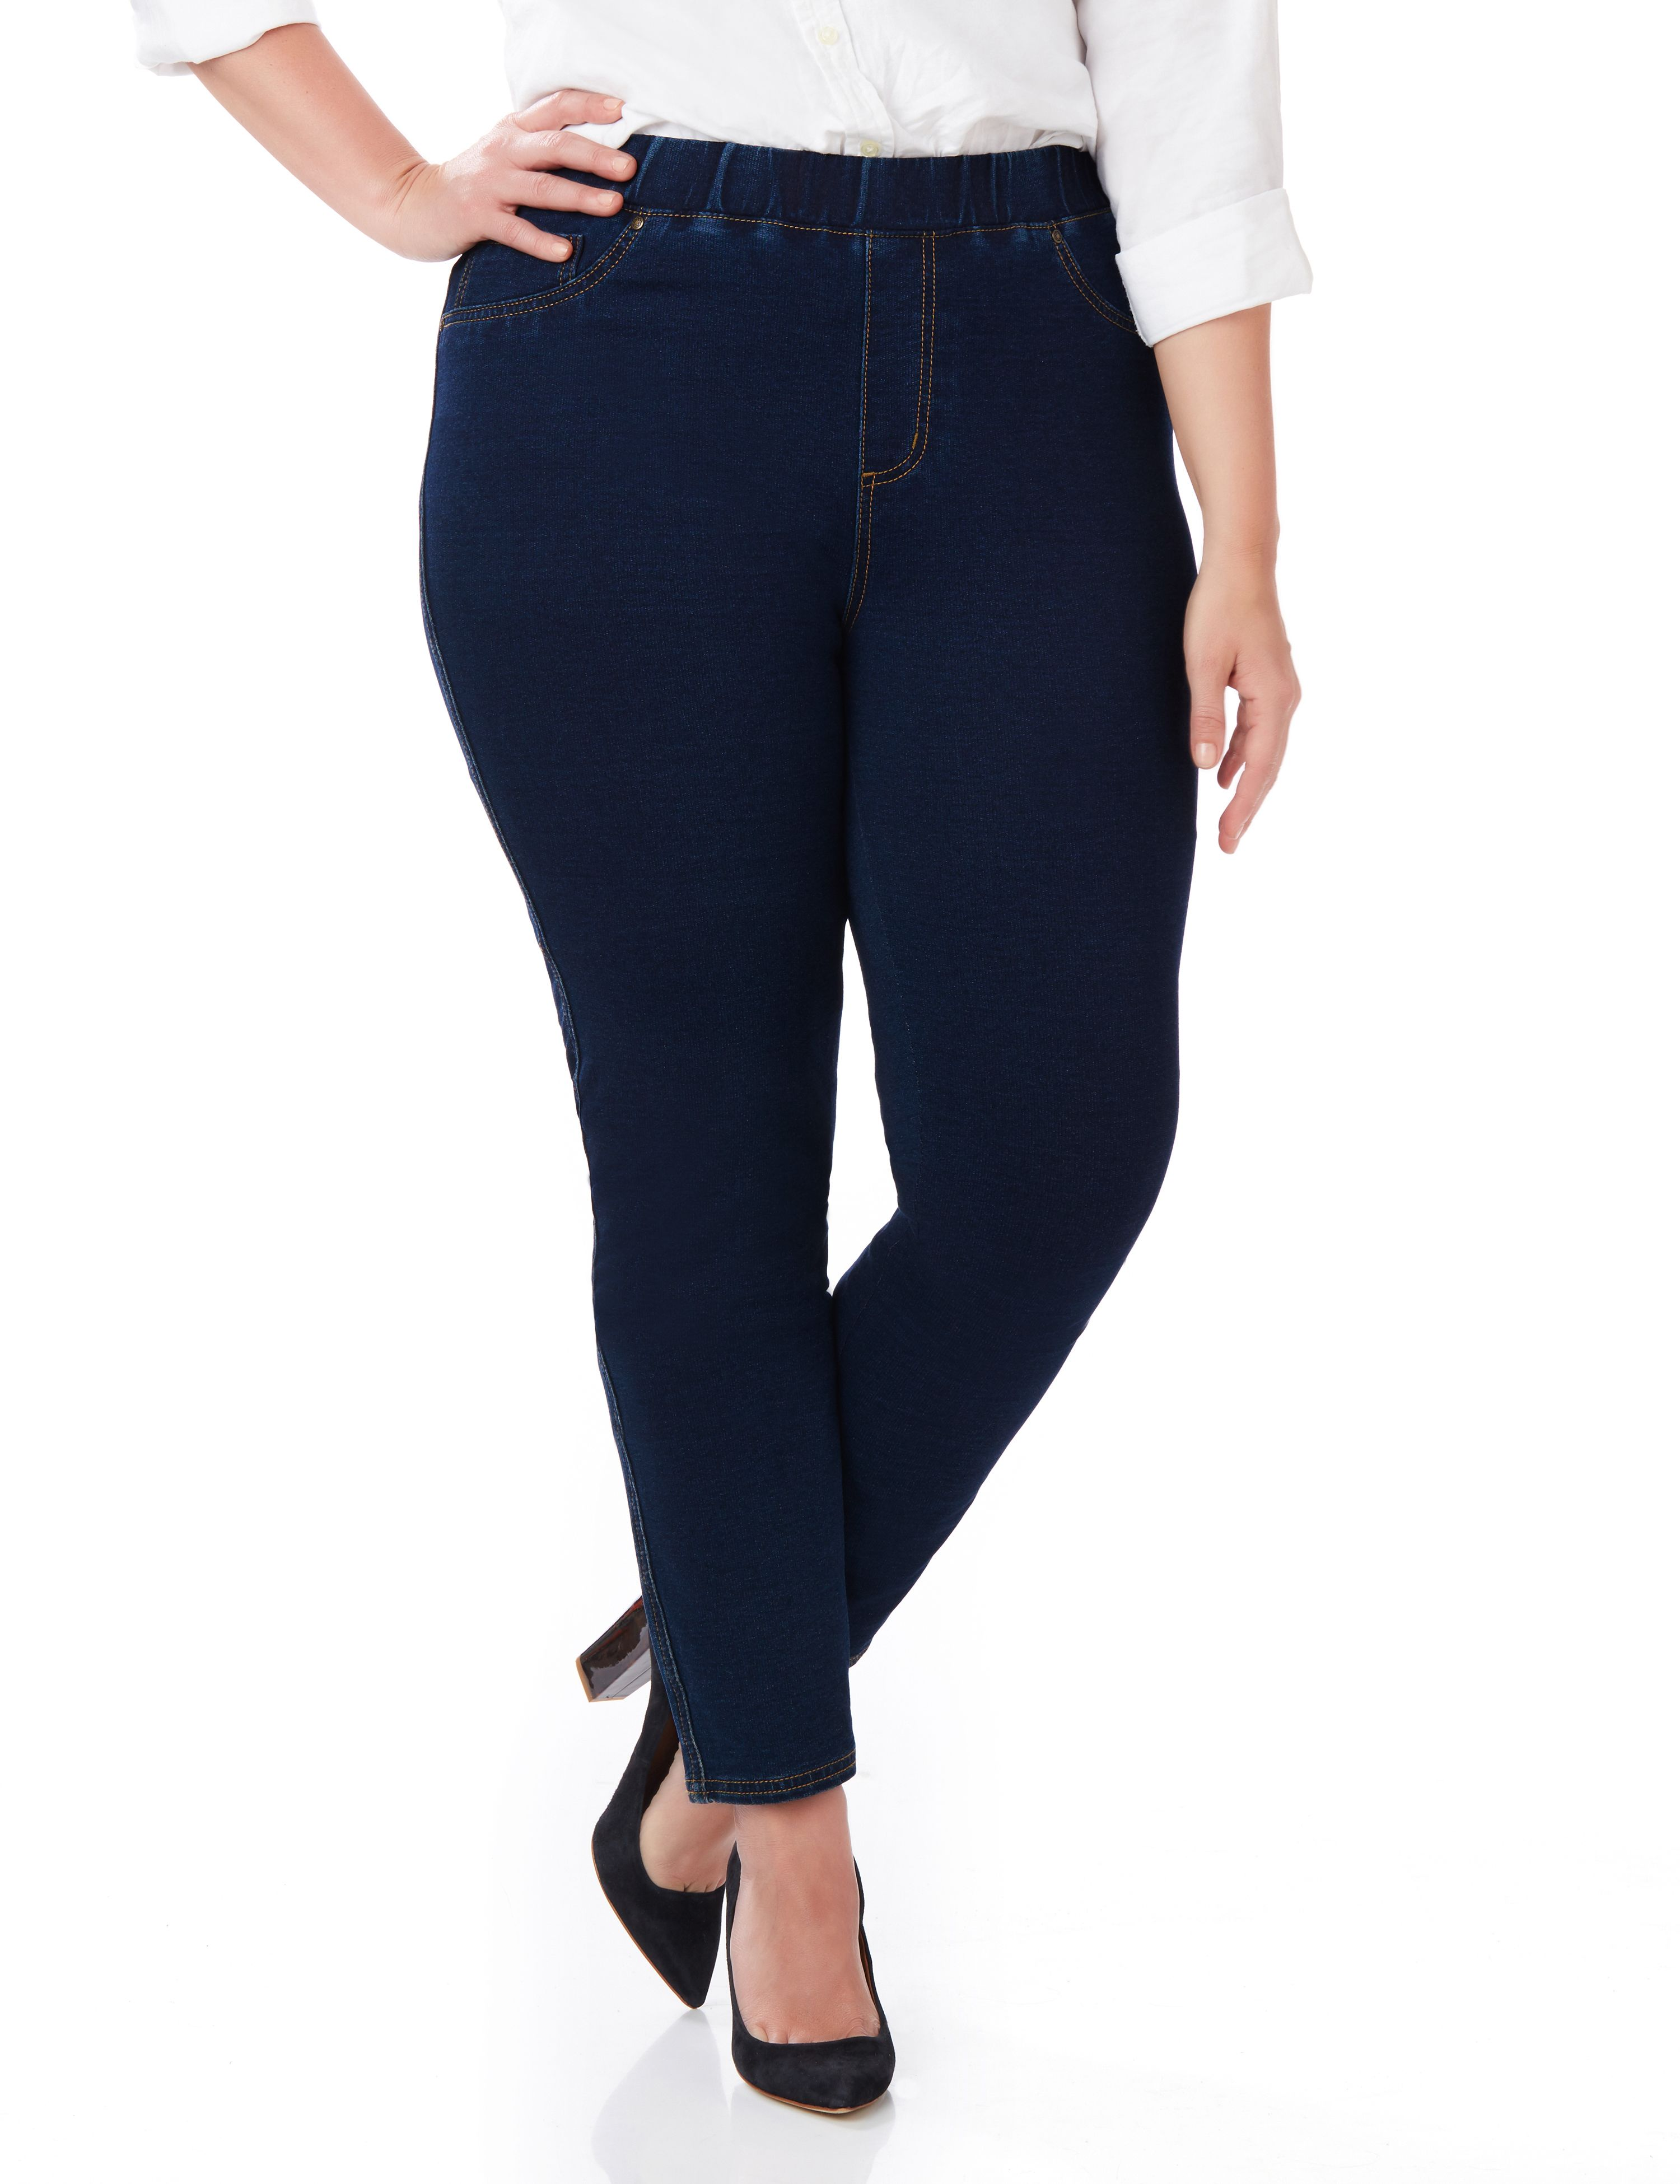 The Knit Jean 201278721